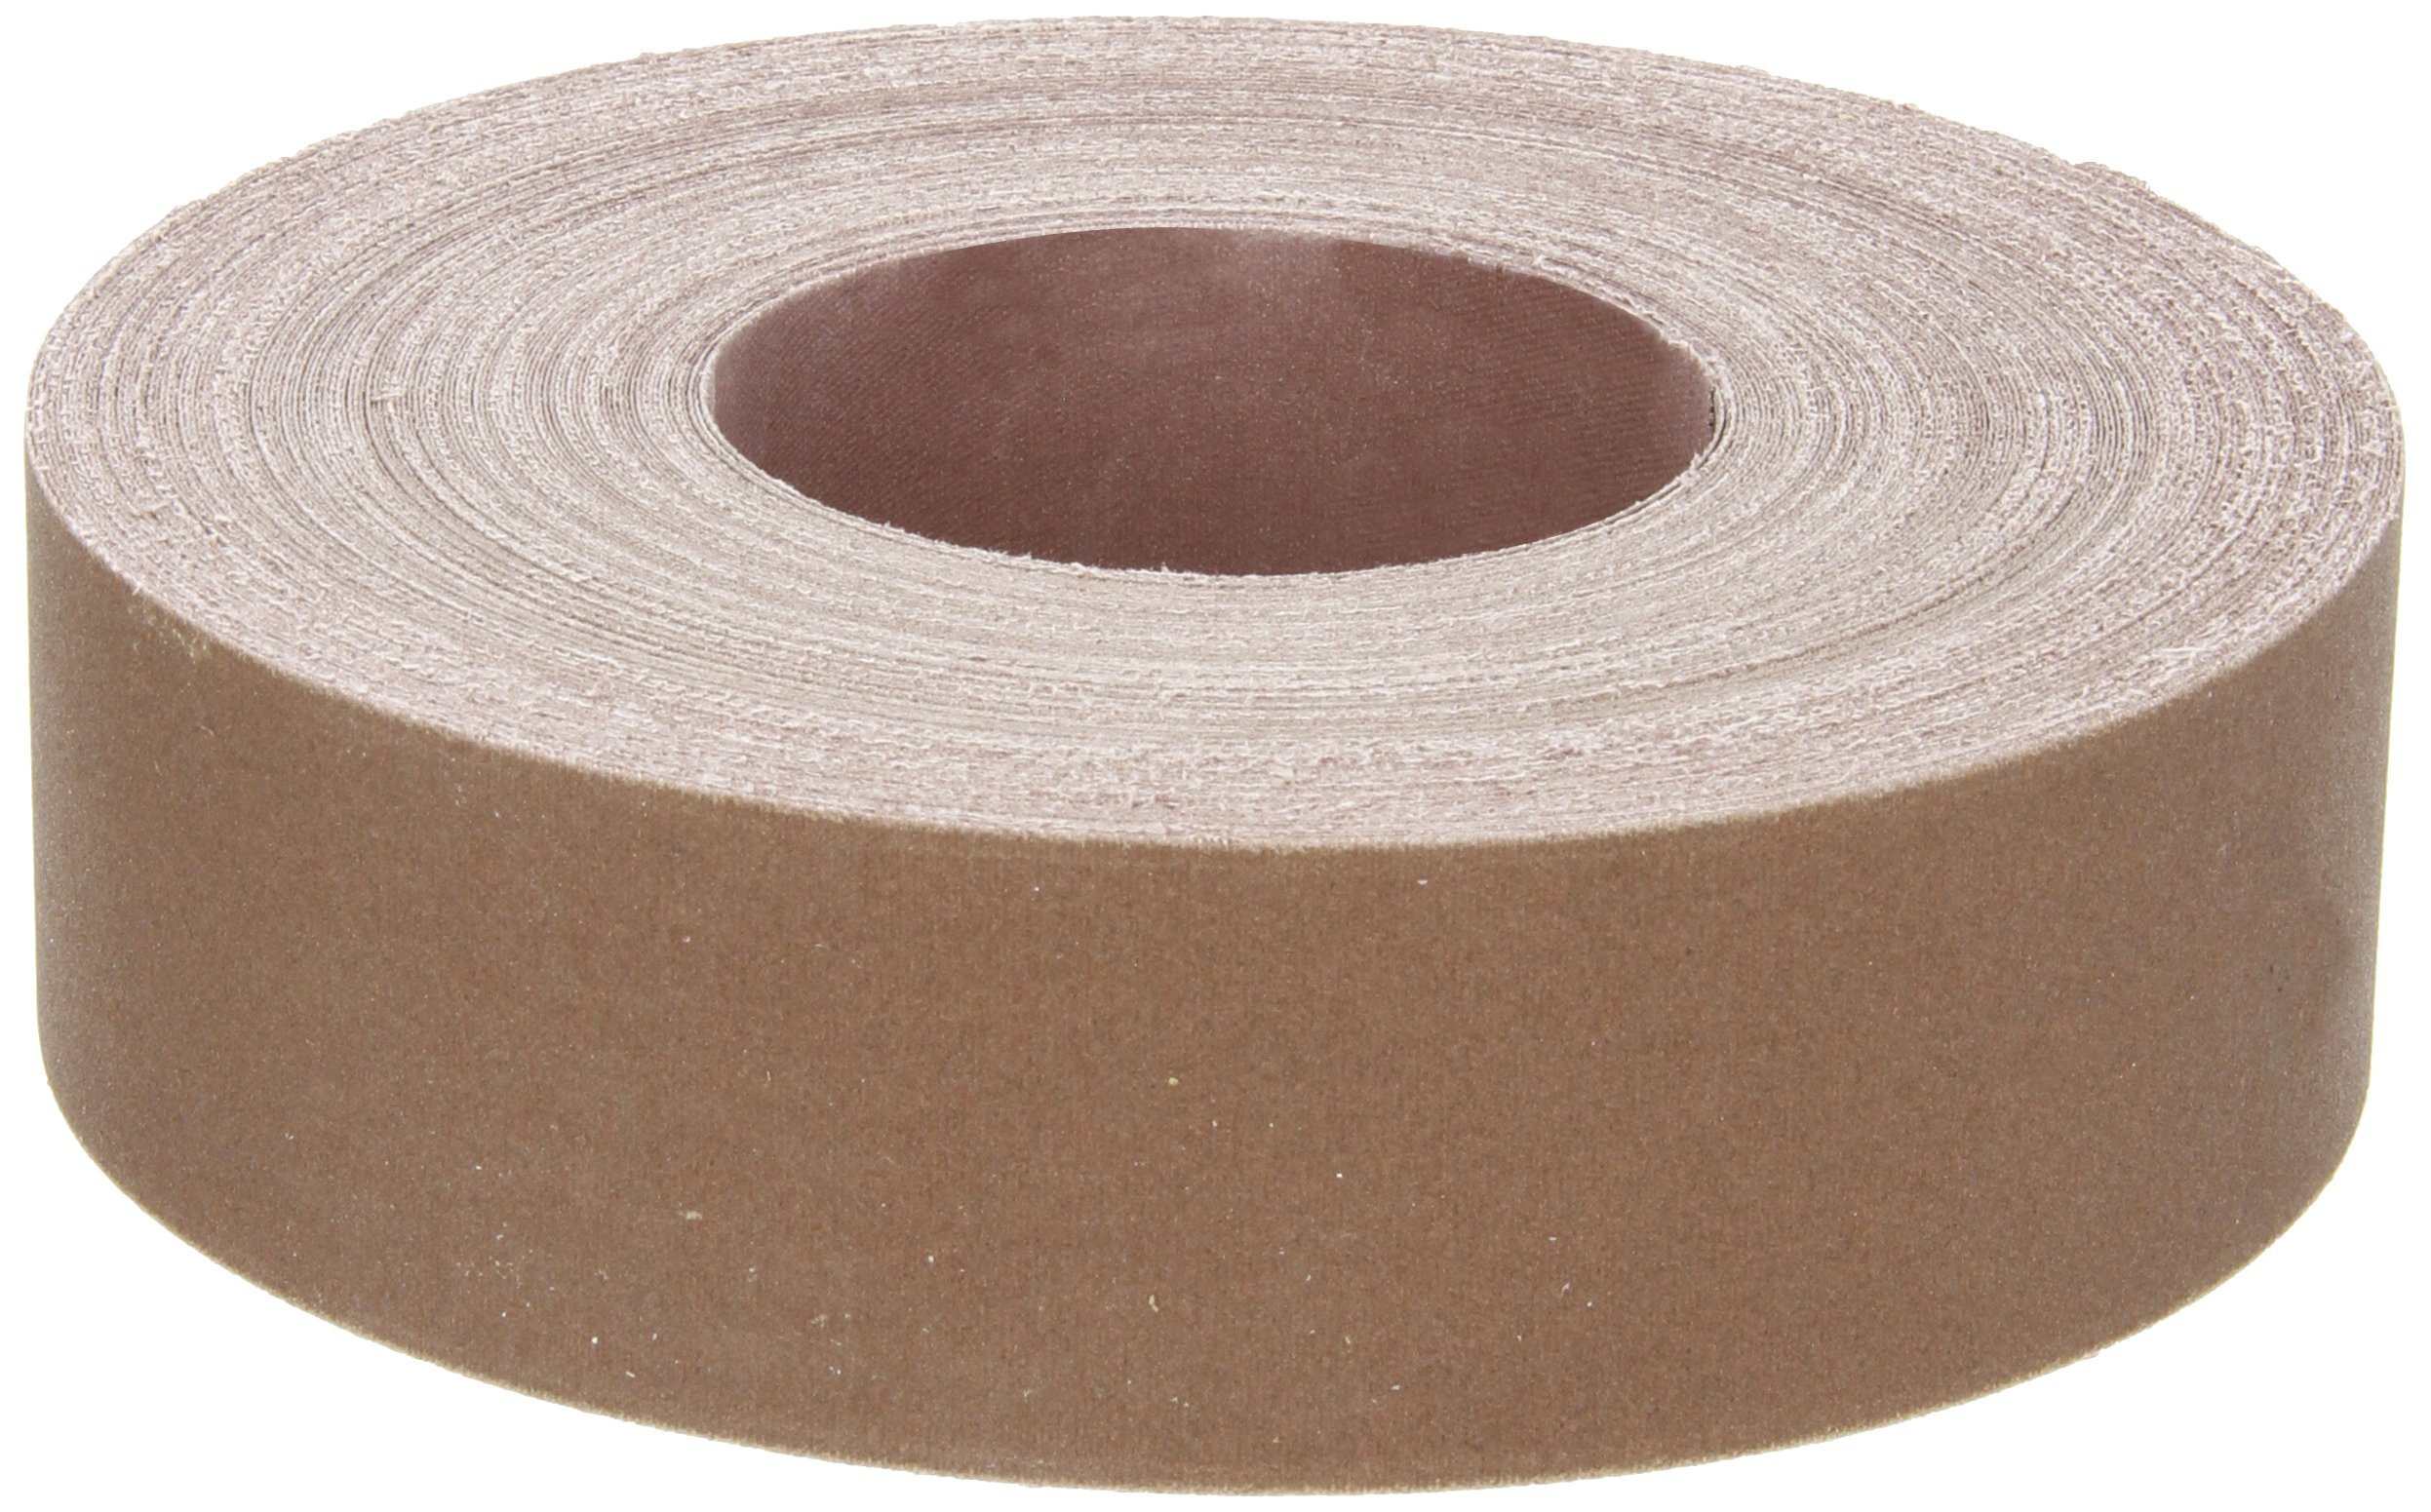 Norton K225 Metalite Abrasive Roll, Cloth Backing, Aluminum Oxide, 2'' Width x 50yd Length, Grit P240 (Pack of 5)